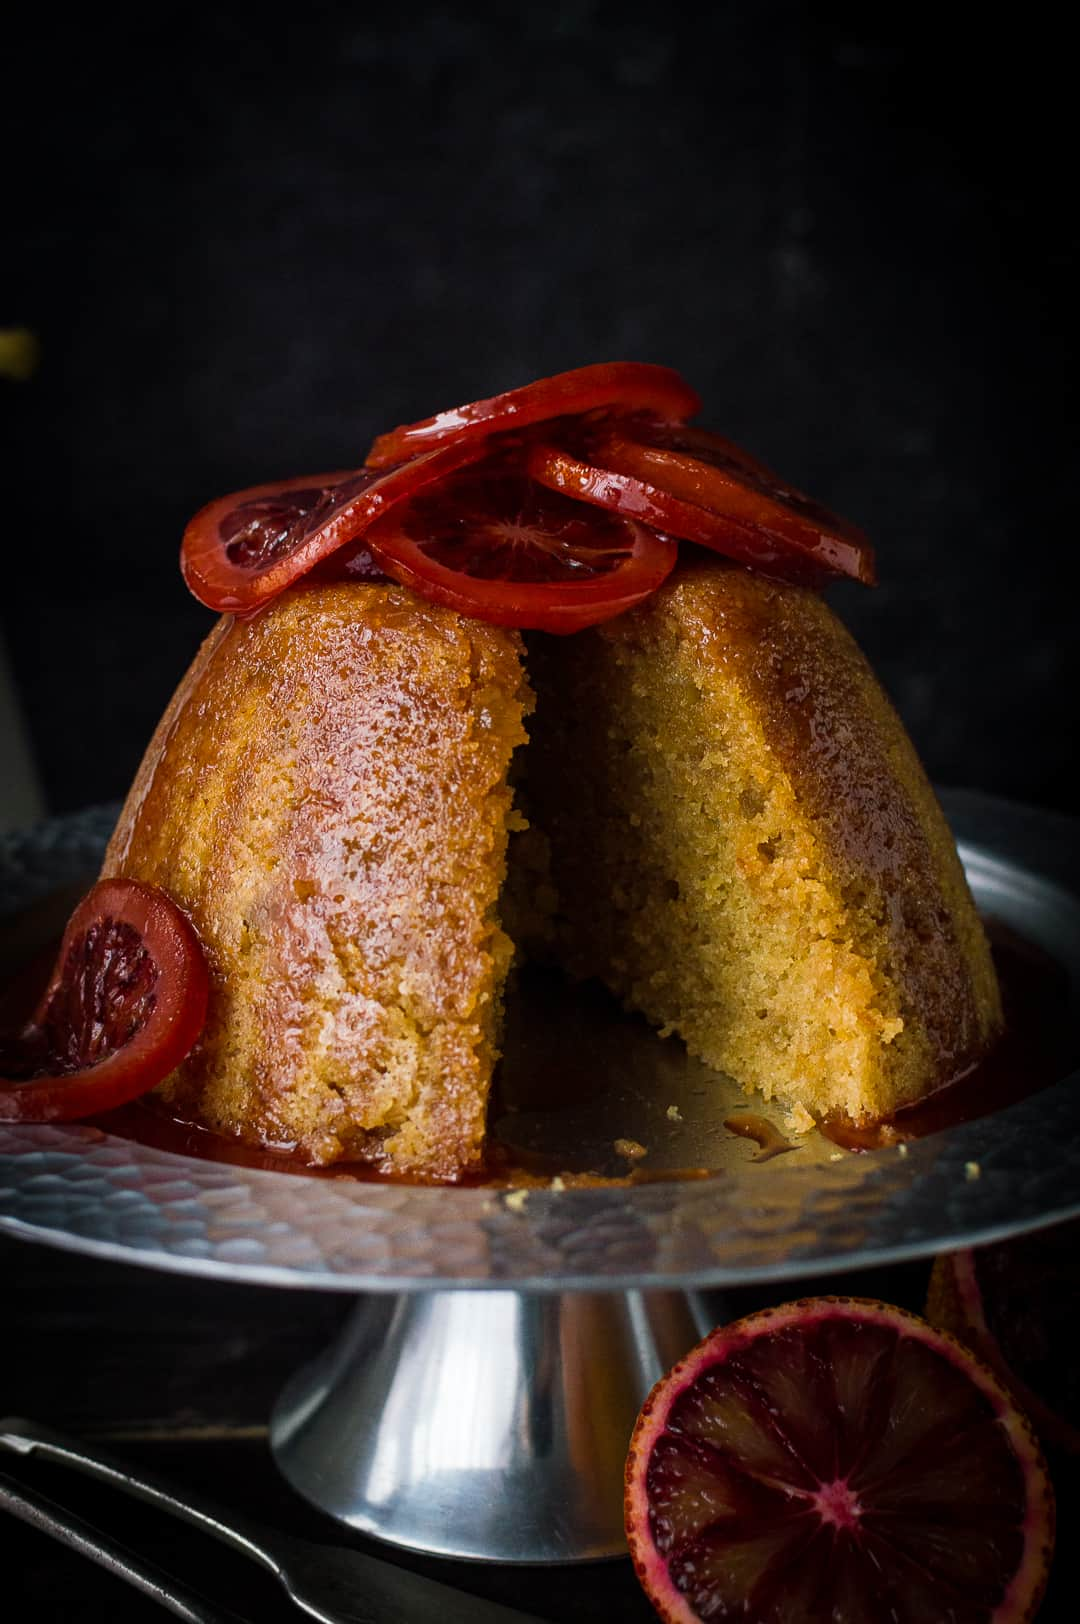 Close-up of sliced slow cooker blood orange and ginger steamed pudding.